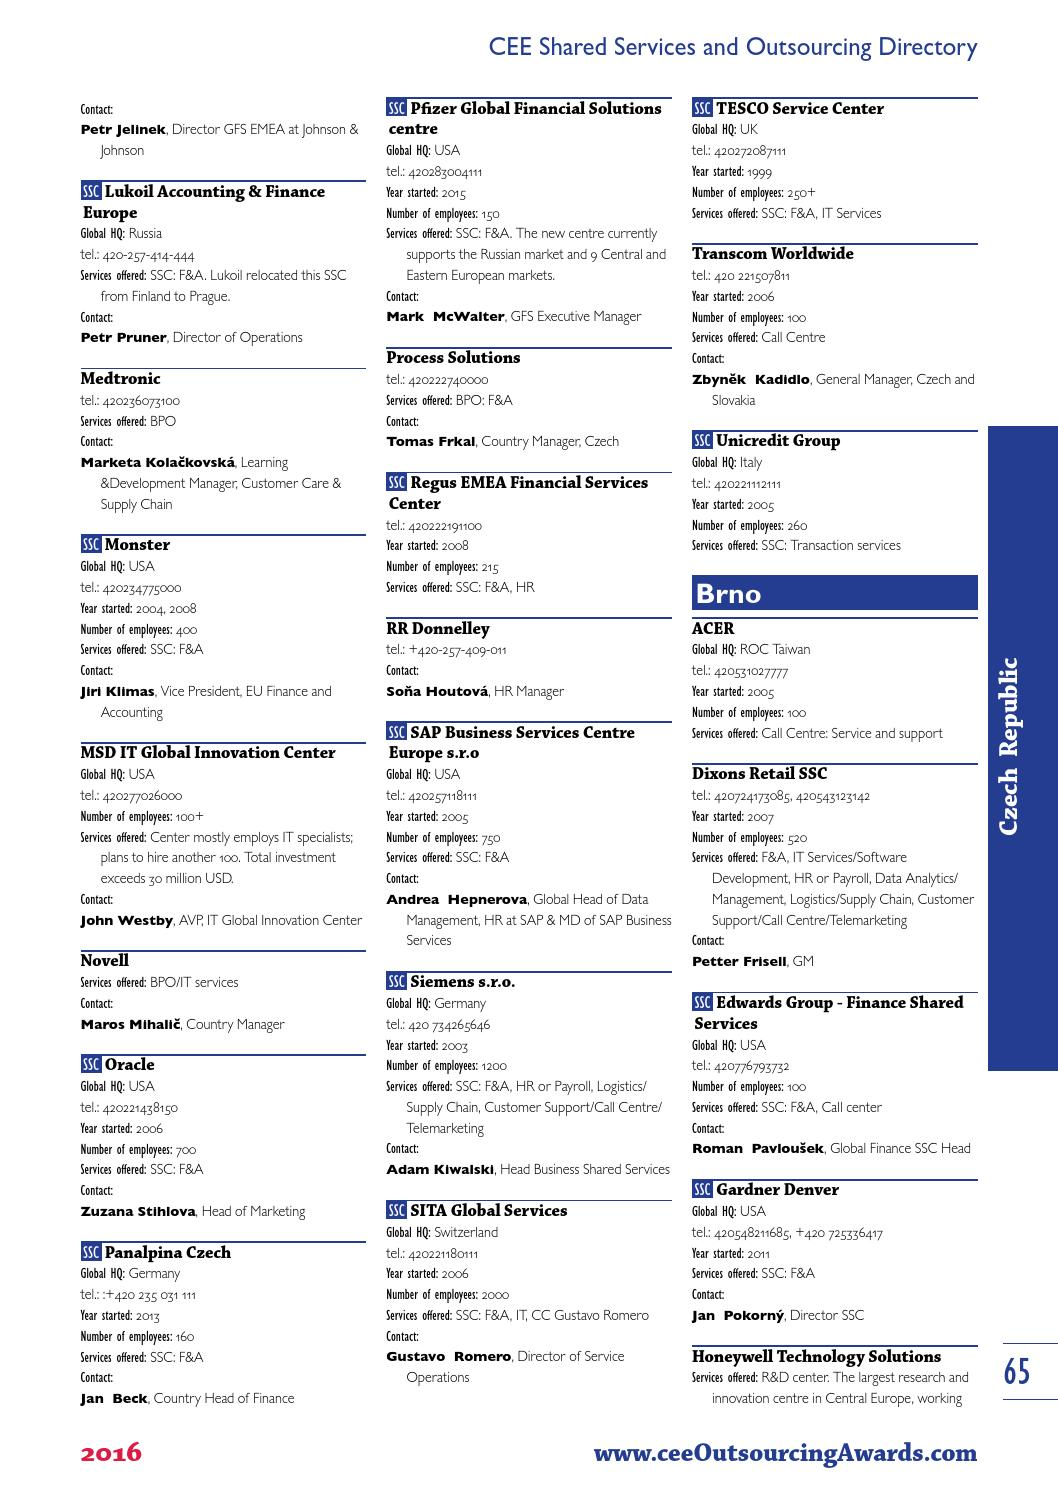 CEE Shared Services and Outsourcing Directory - 2016 by